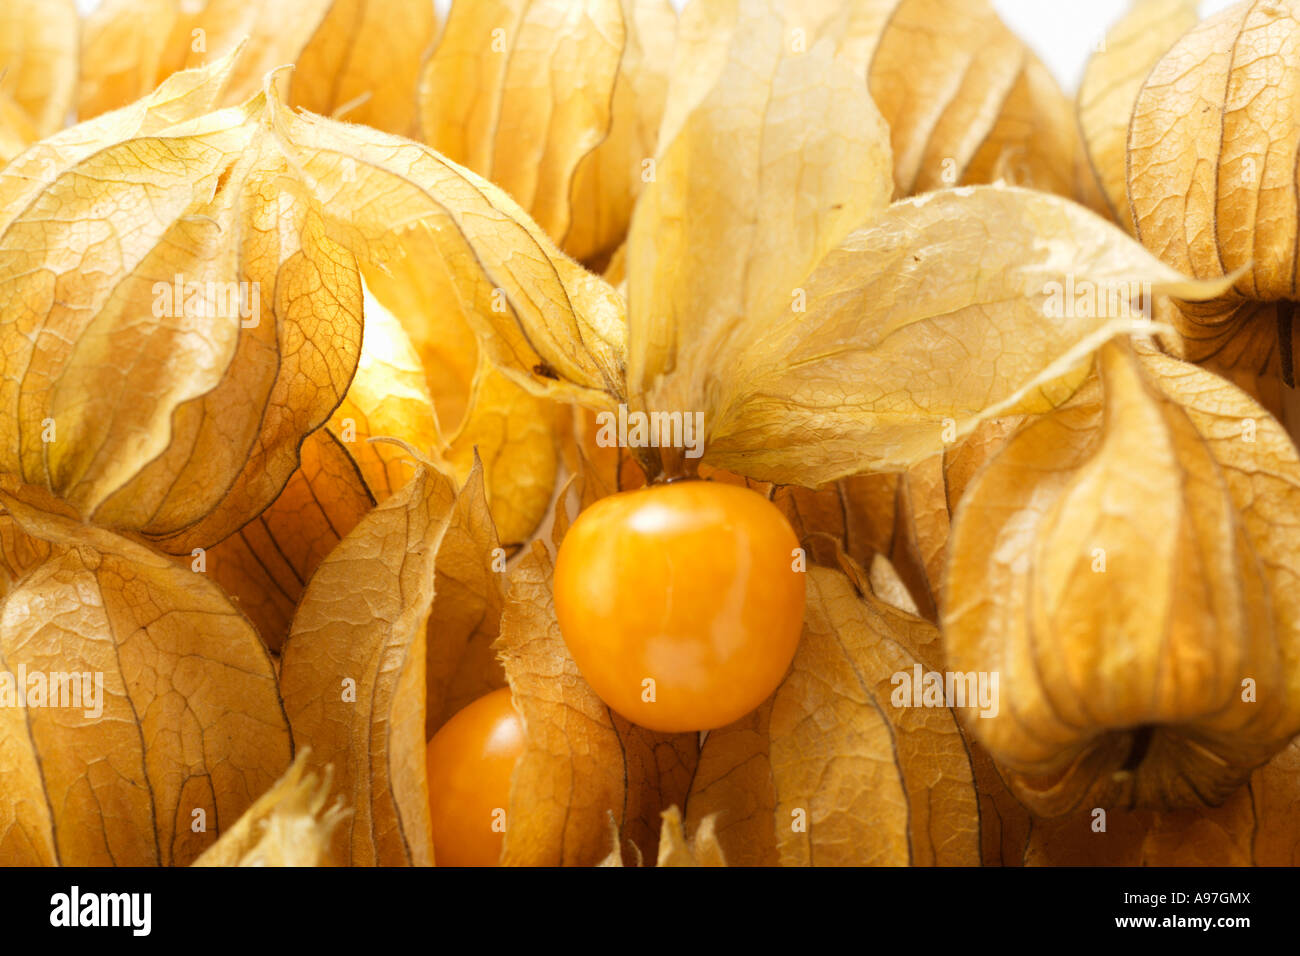 Several Physalis with and without calyxes close up FoodCollection Stock Photo